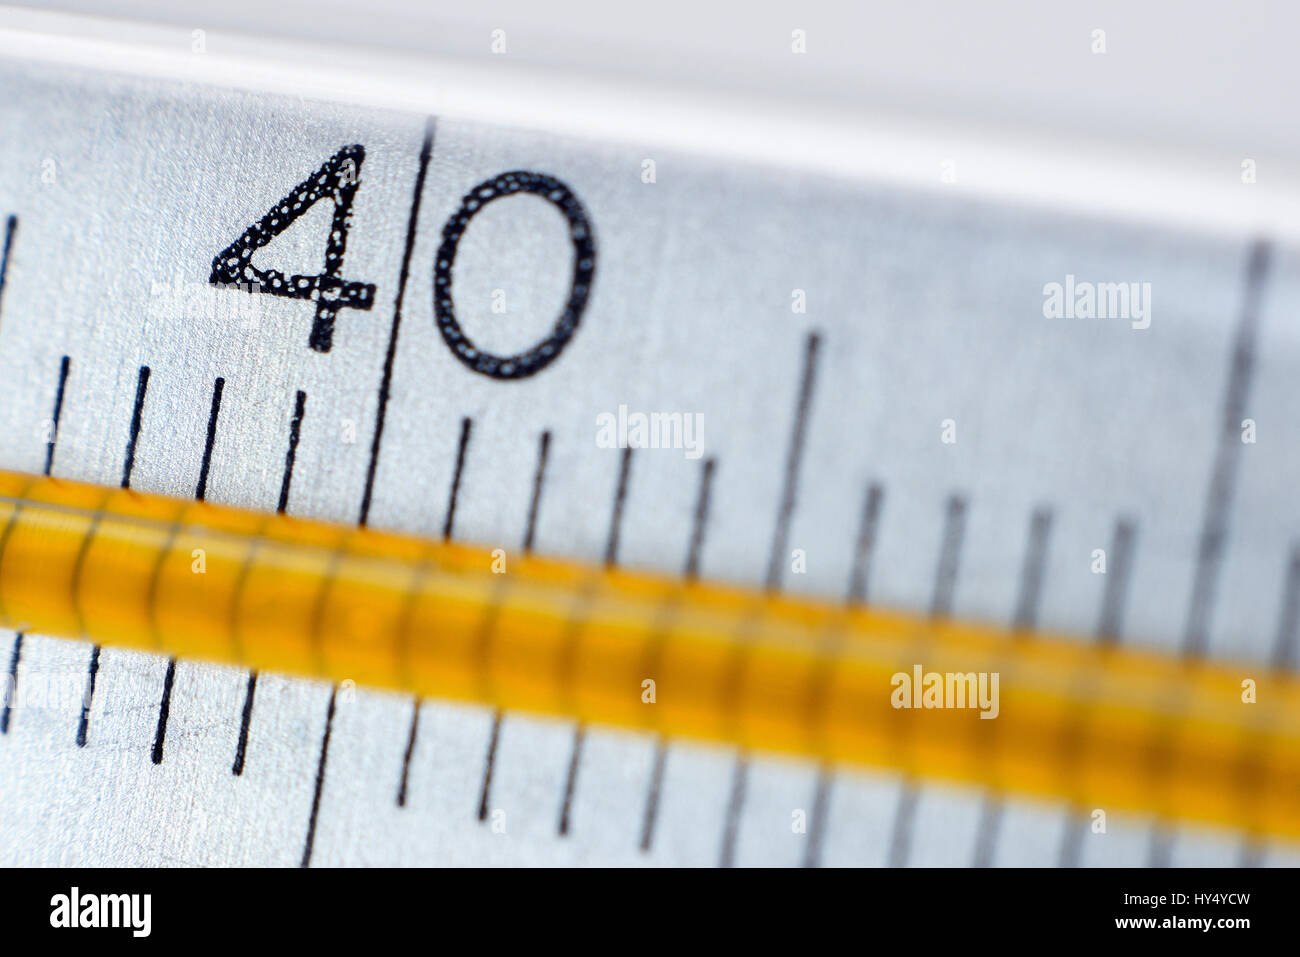 Clinical thermometer at 40 degrees, fever, Fieberthermometer bei 40 Grad, Fieber Stock Photo